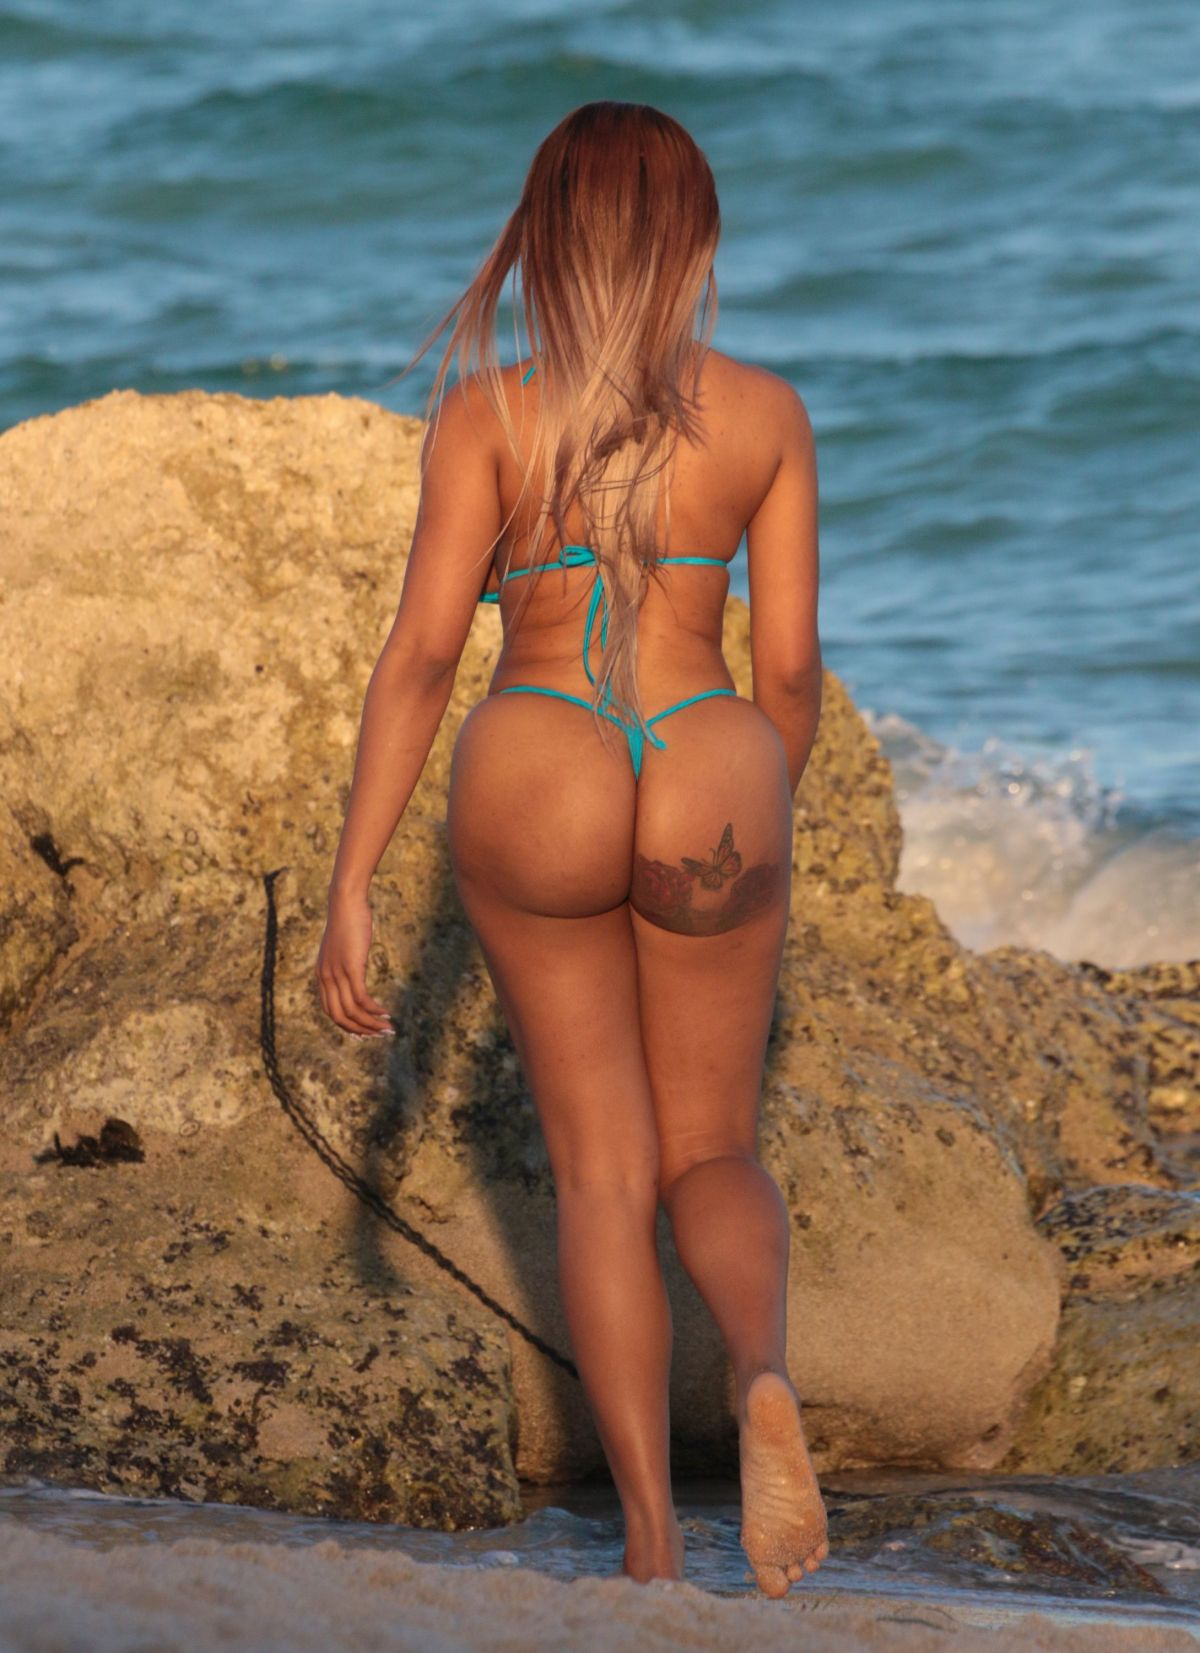 Moriah Mills in Bikini Photoshoot on the beach in Miami Pic 6 of 35